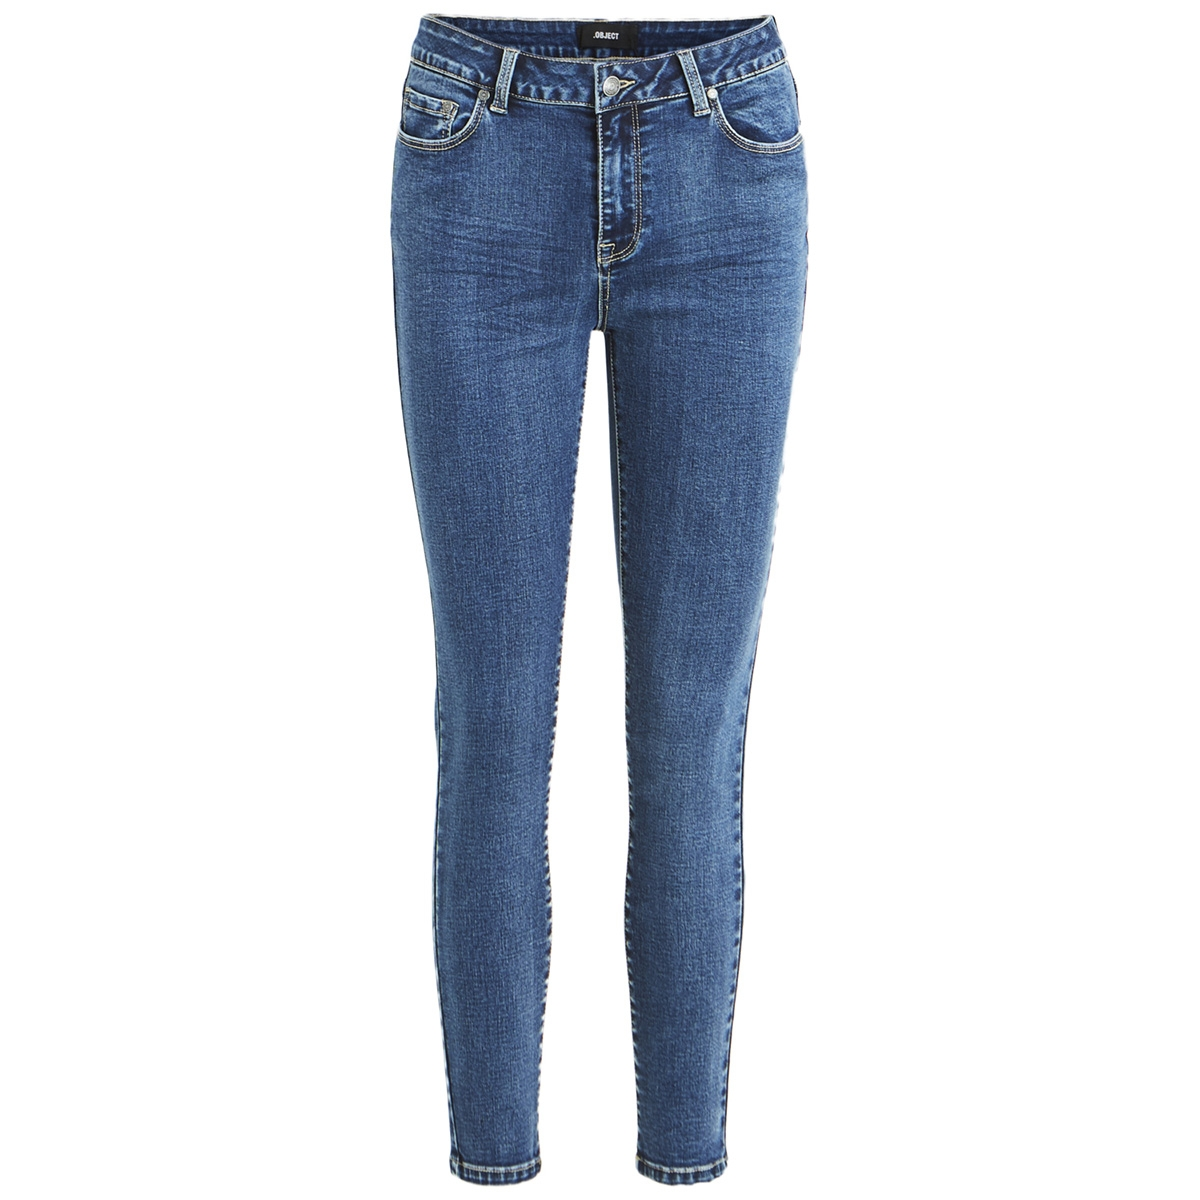 objskinnykatie mw oxi180 noos 23028305 object jeans medium blue denim